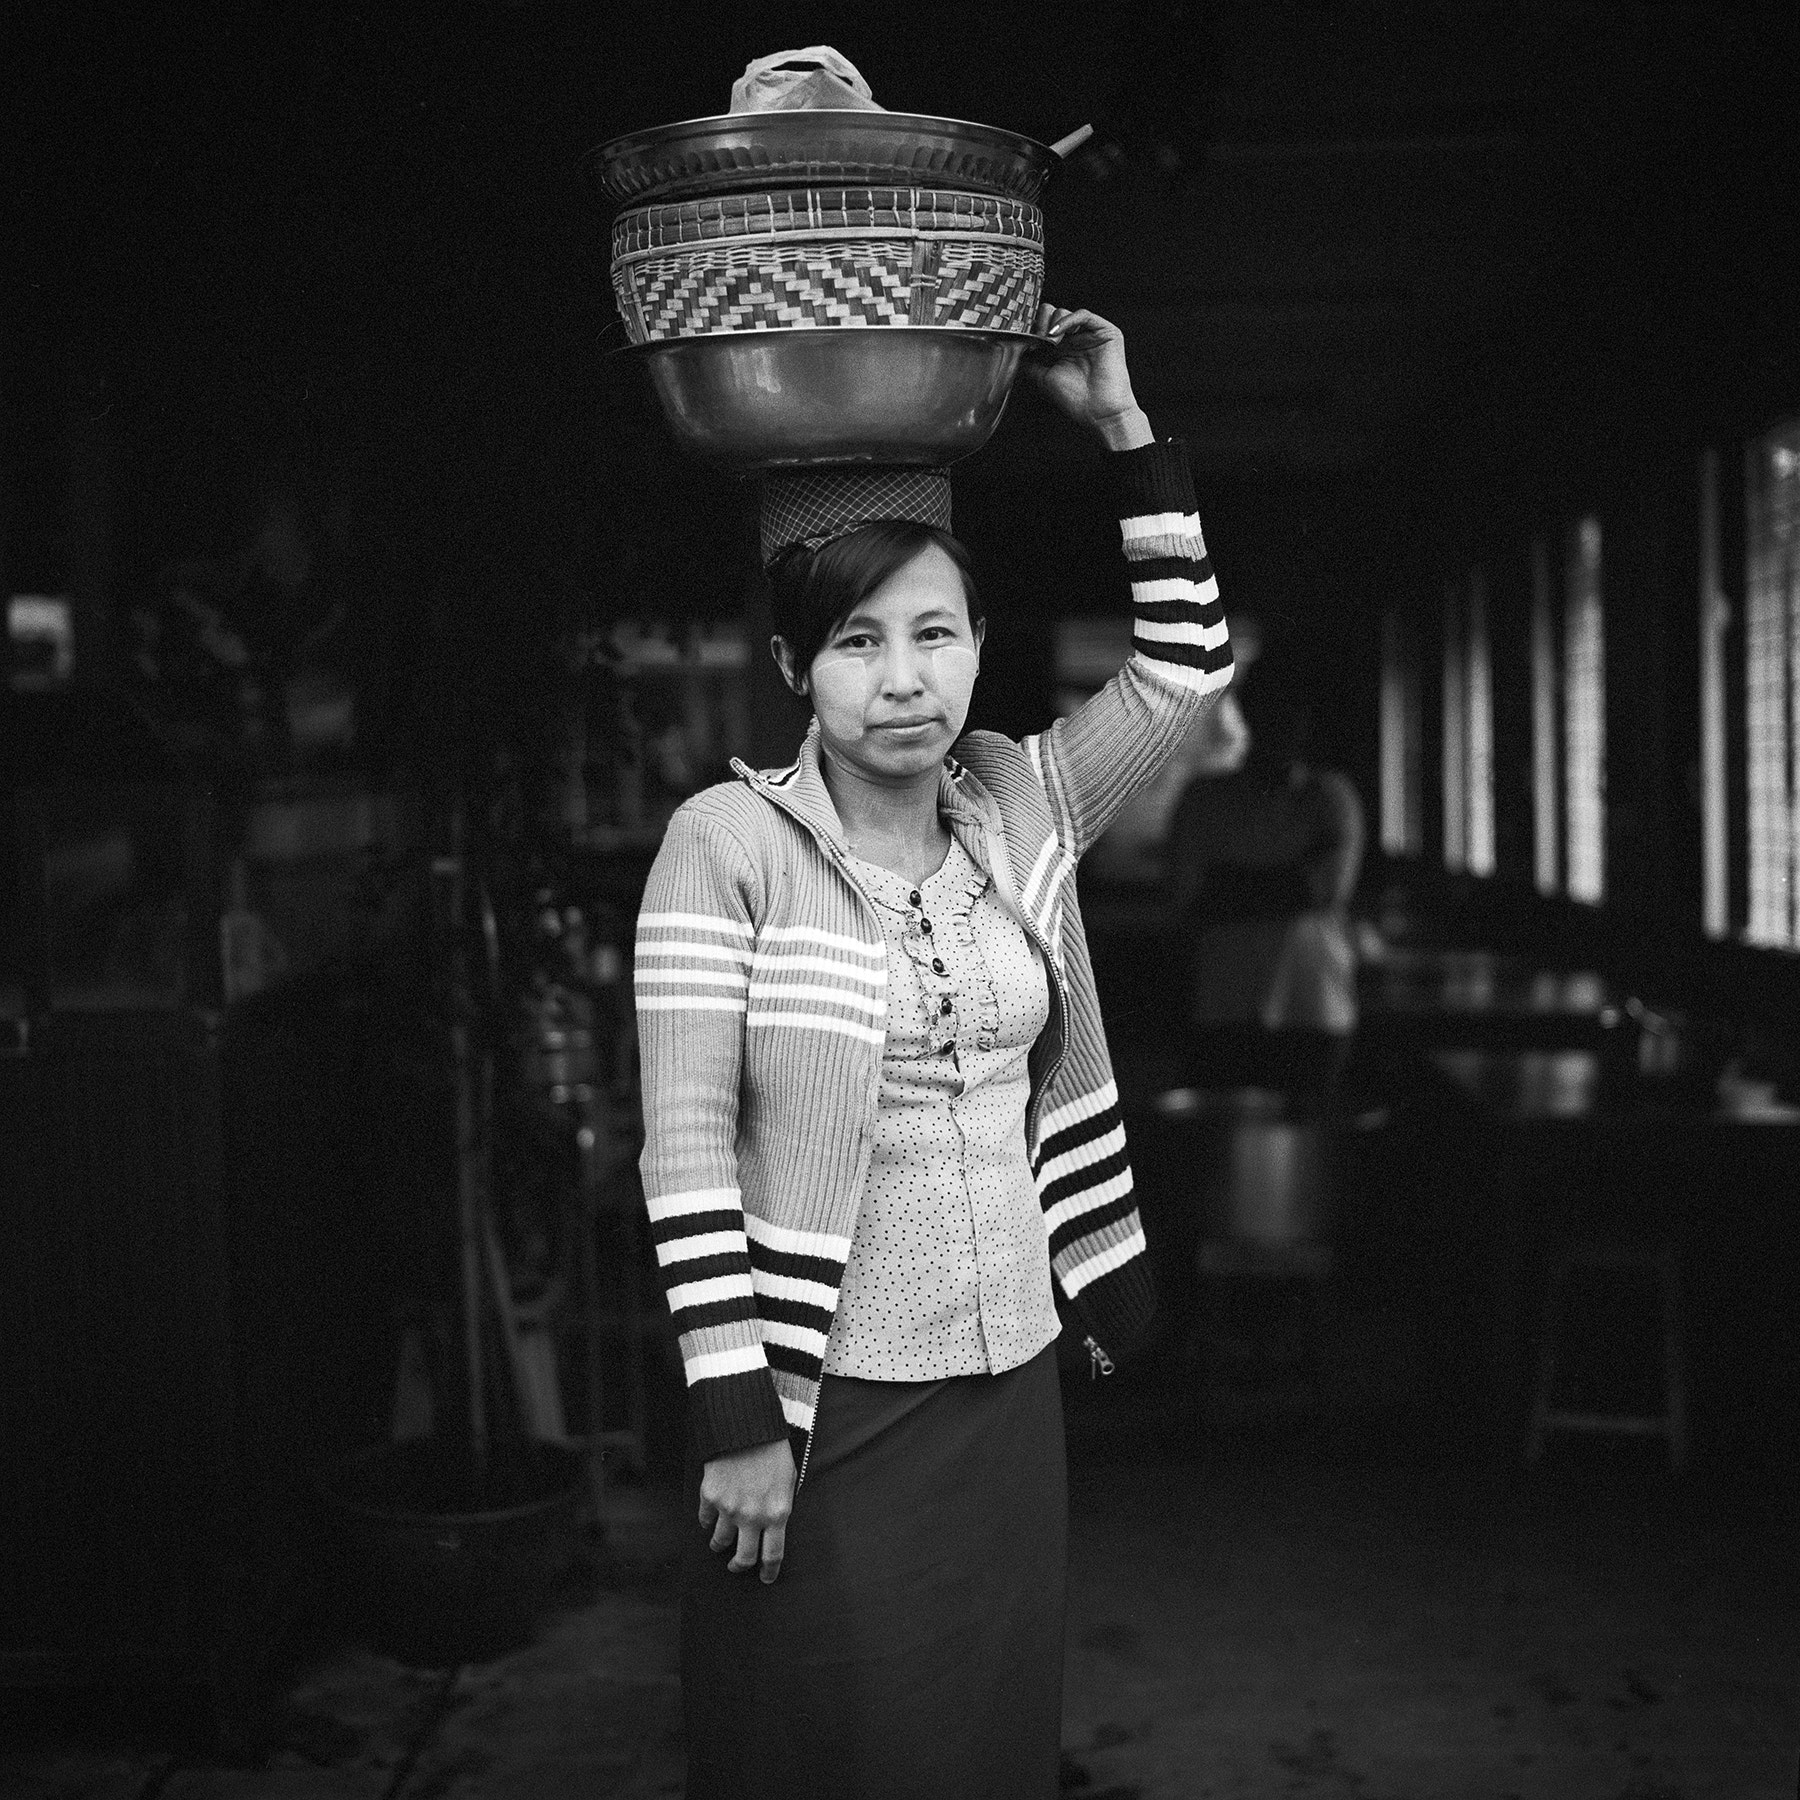 Photograph helper, aung thukha eatery by  momofuku on 500px